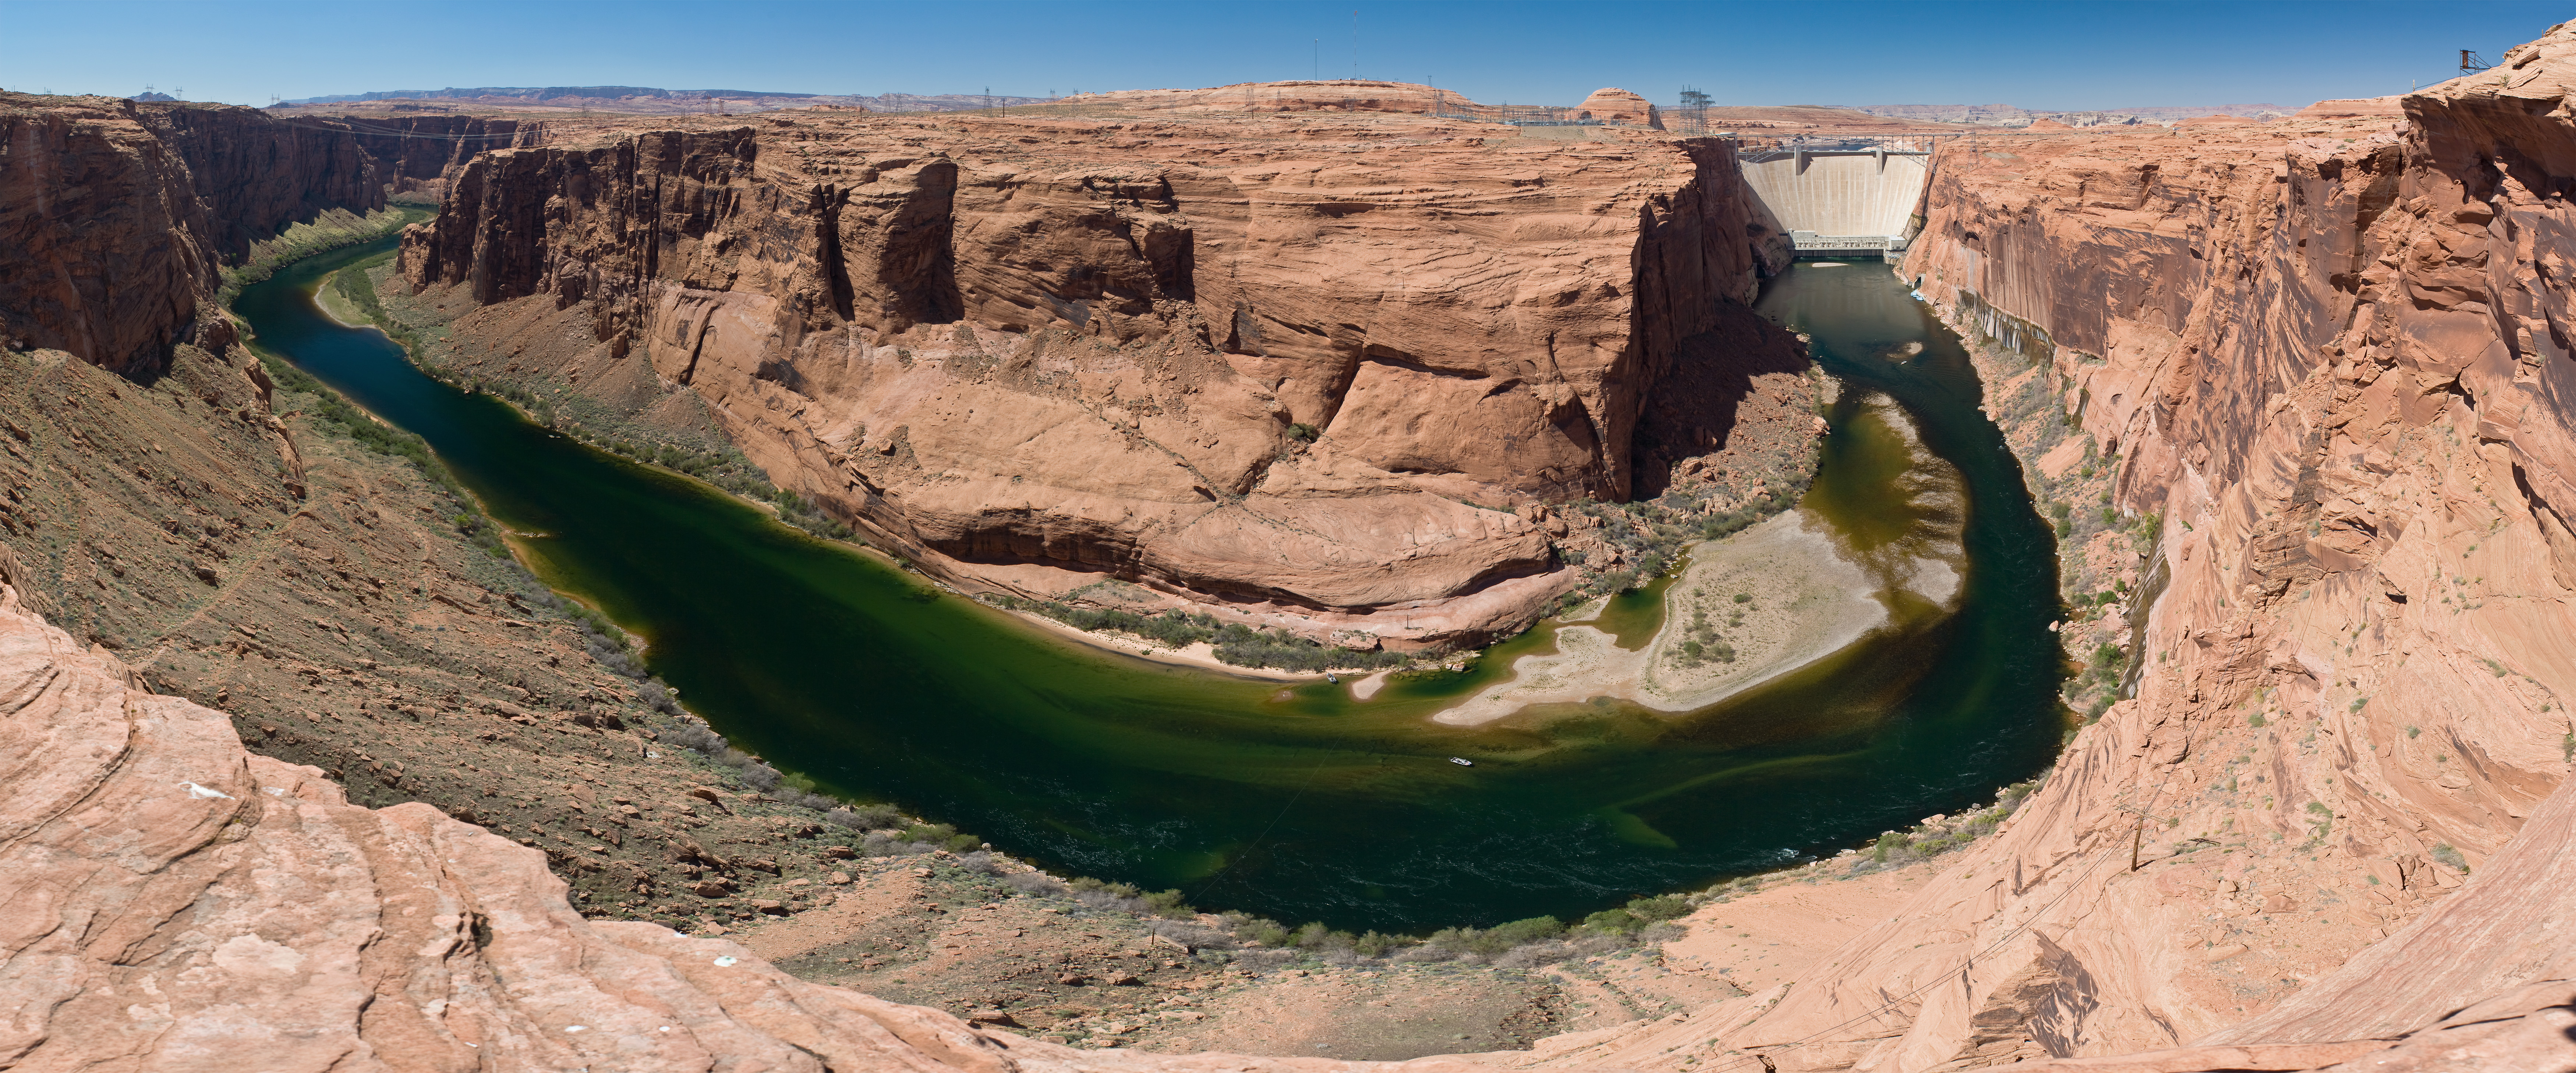 an analysis of the environmental concerns in glen canyon dam project Ex post power economic analysis of record of decision operational restrictions at glen canyon dam by  colorado river storage project, arizona, final environmental.